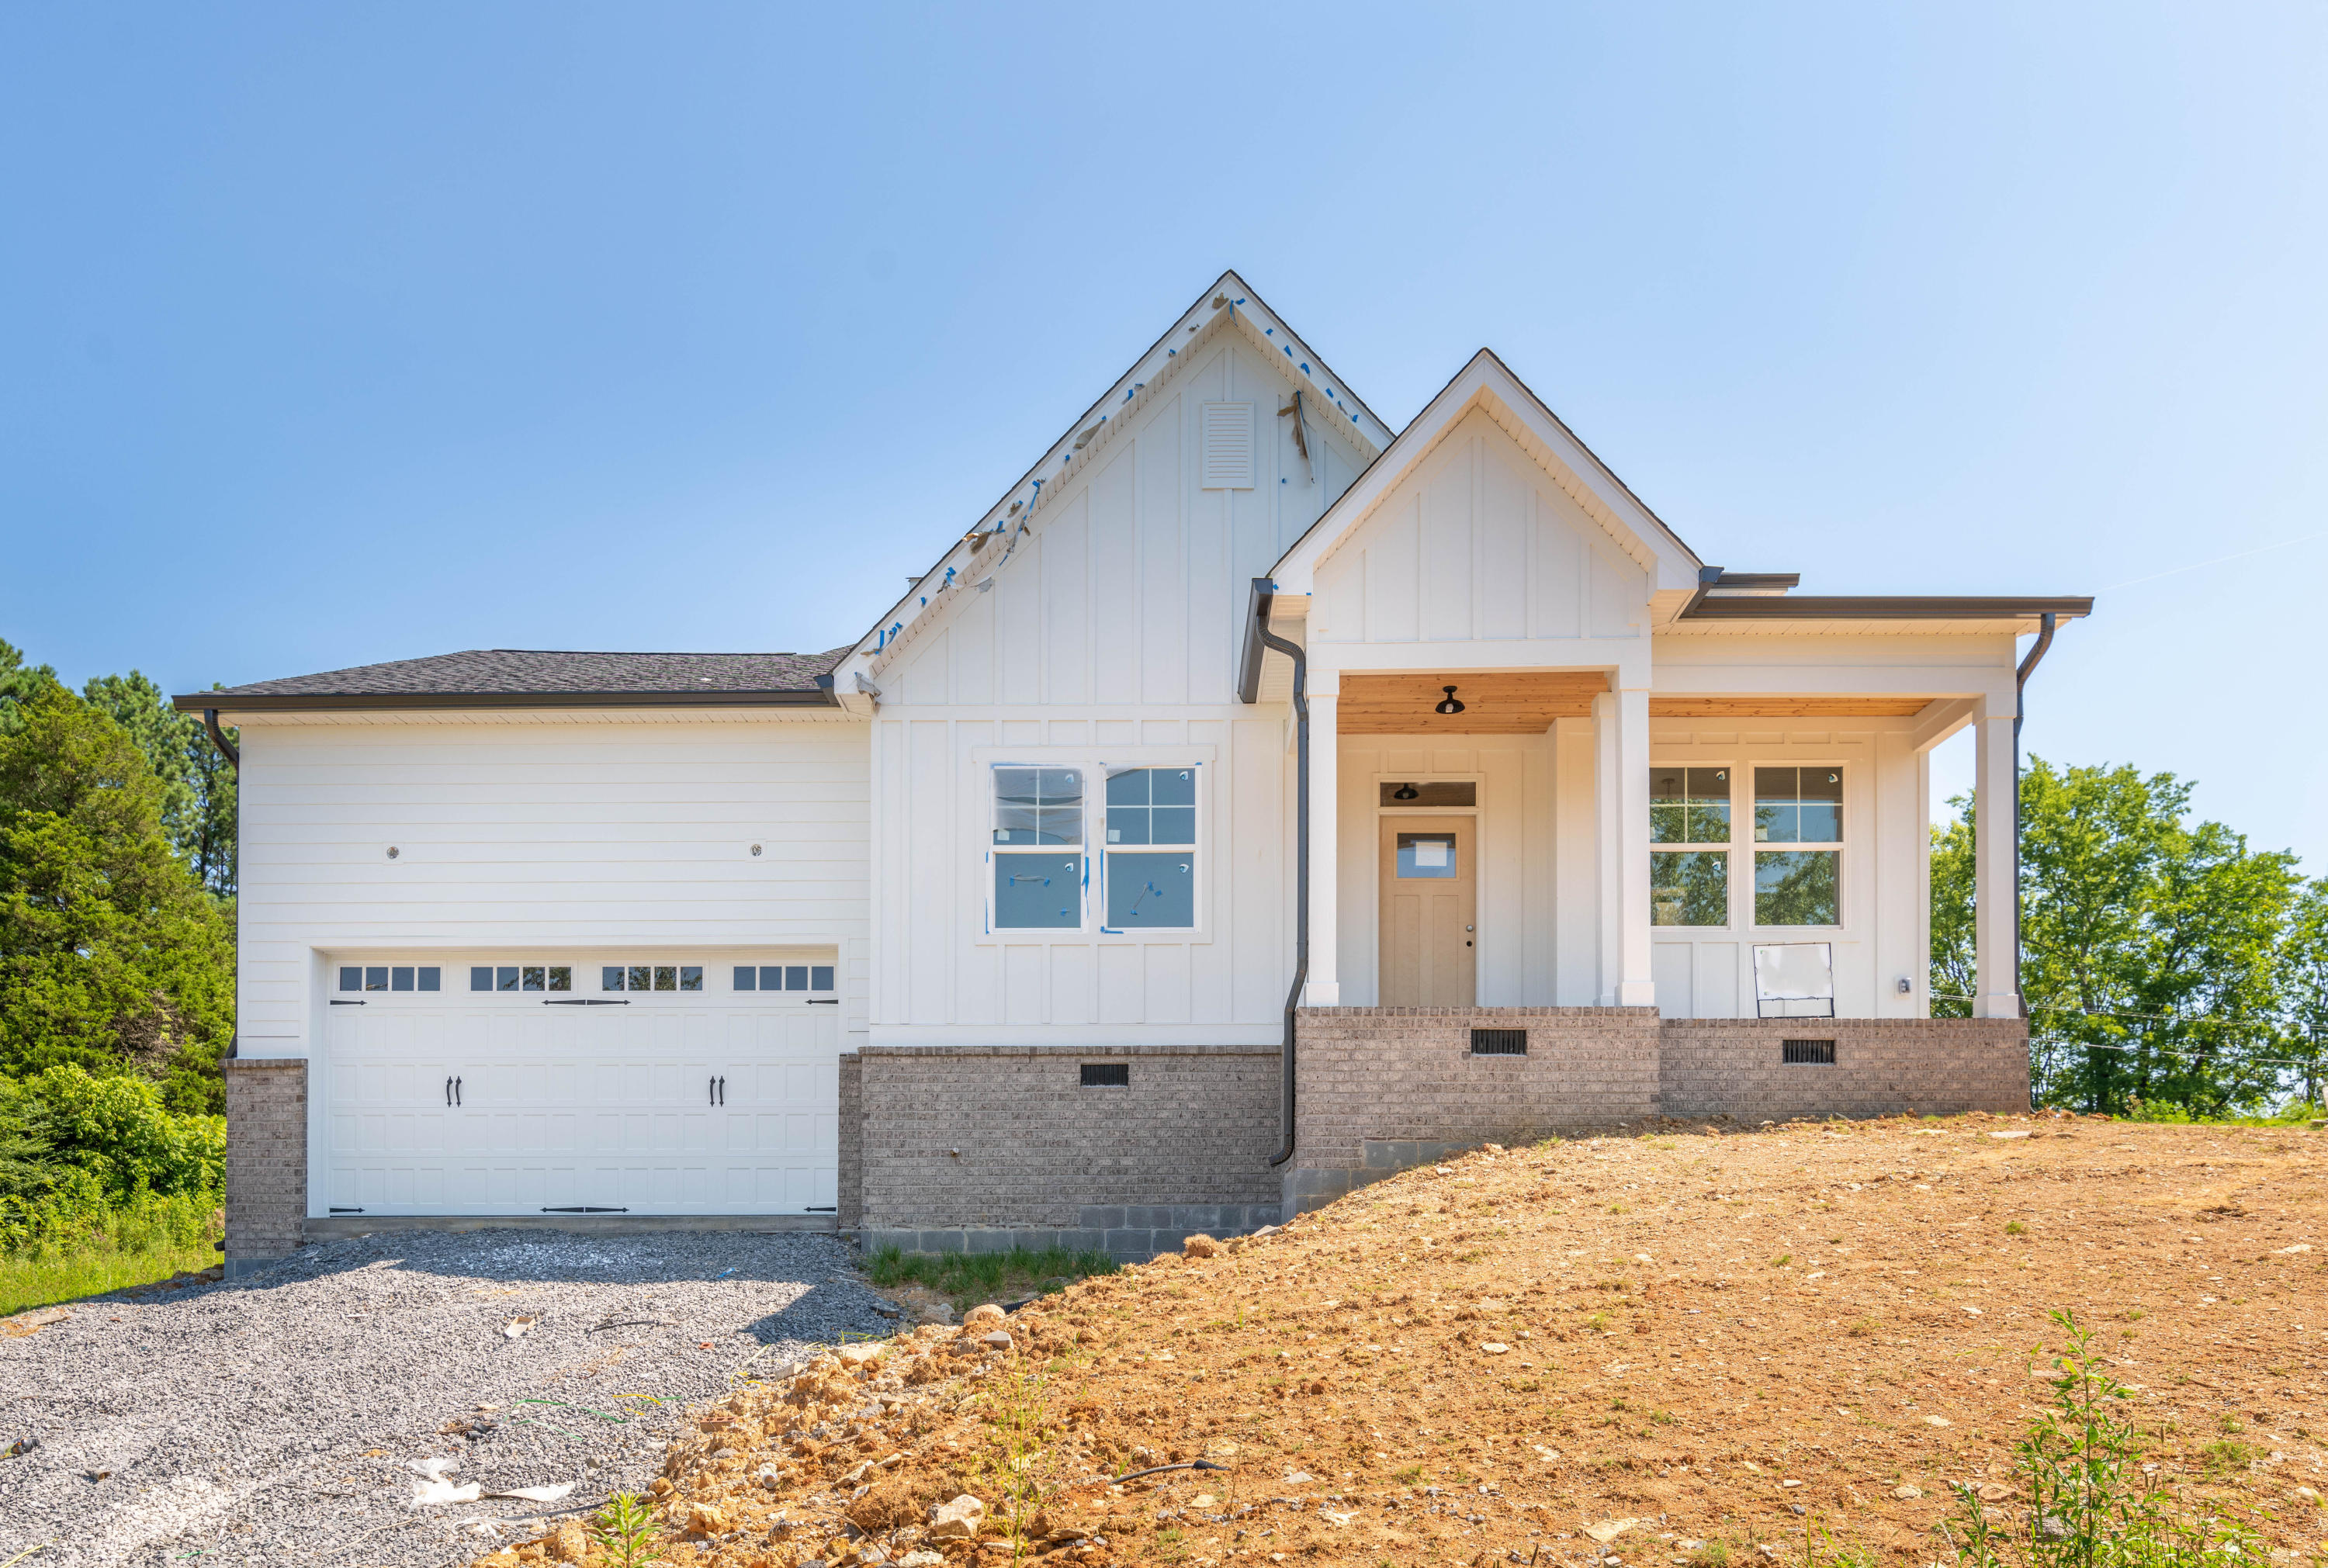 Details for 4230 Green Shanty, Ooltewah, TN 37363